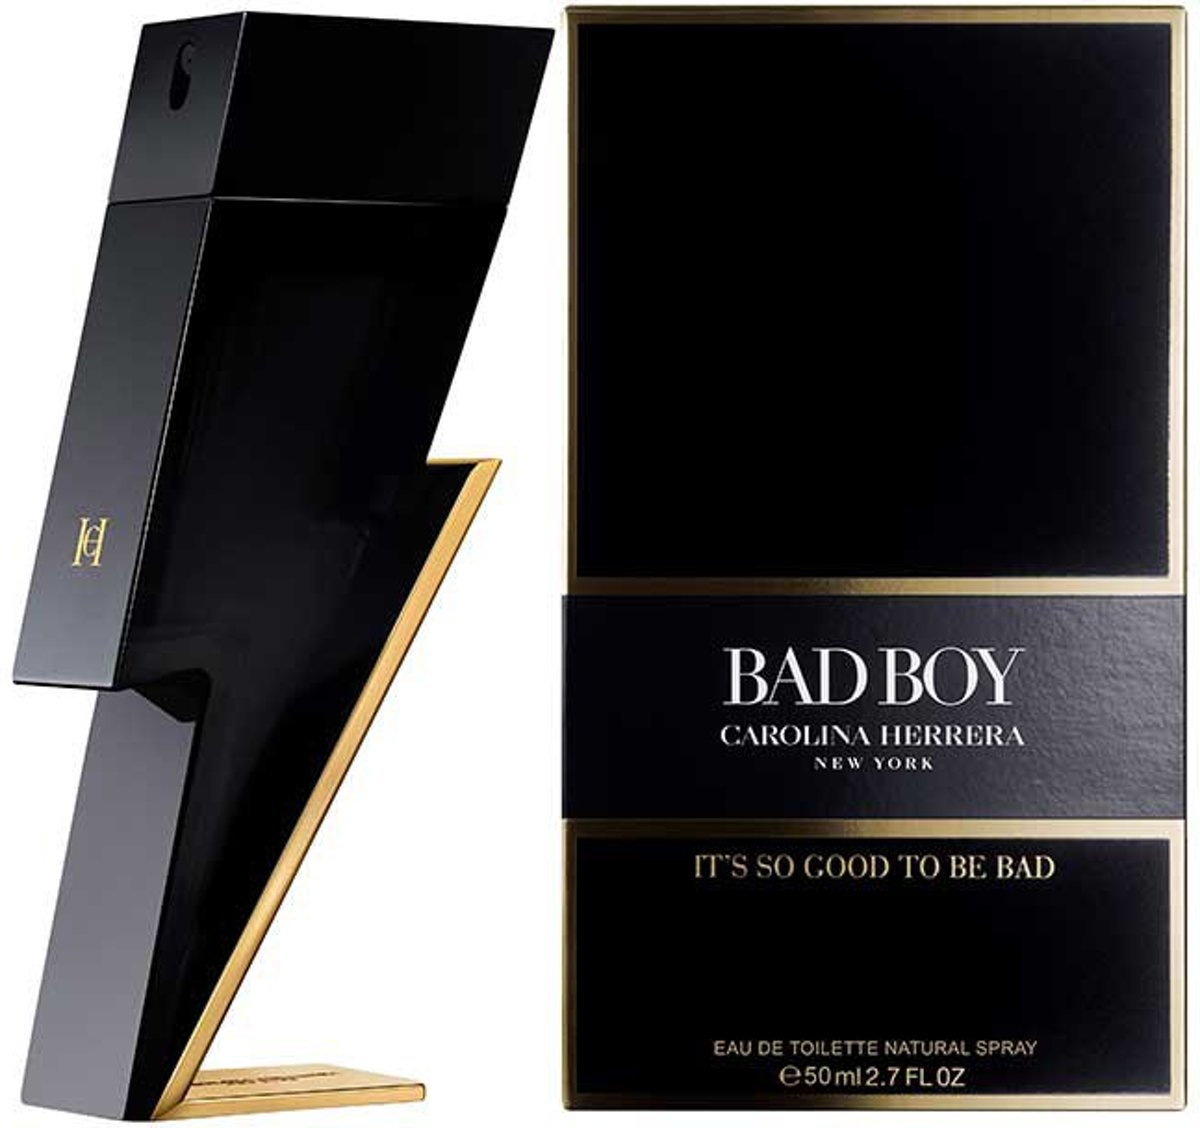 Carolina Herrera BAD BOY edp spray 50 ml